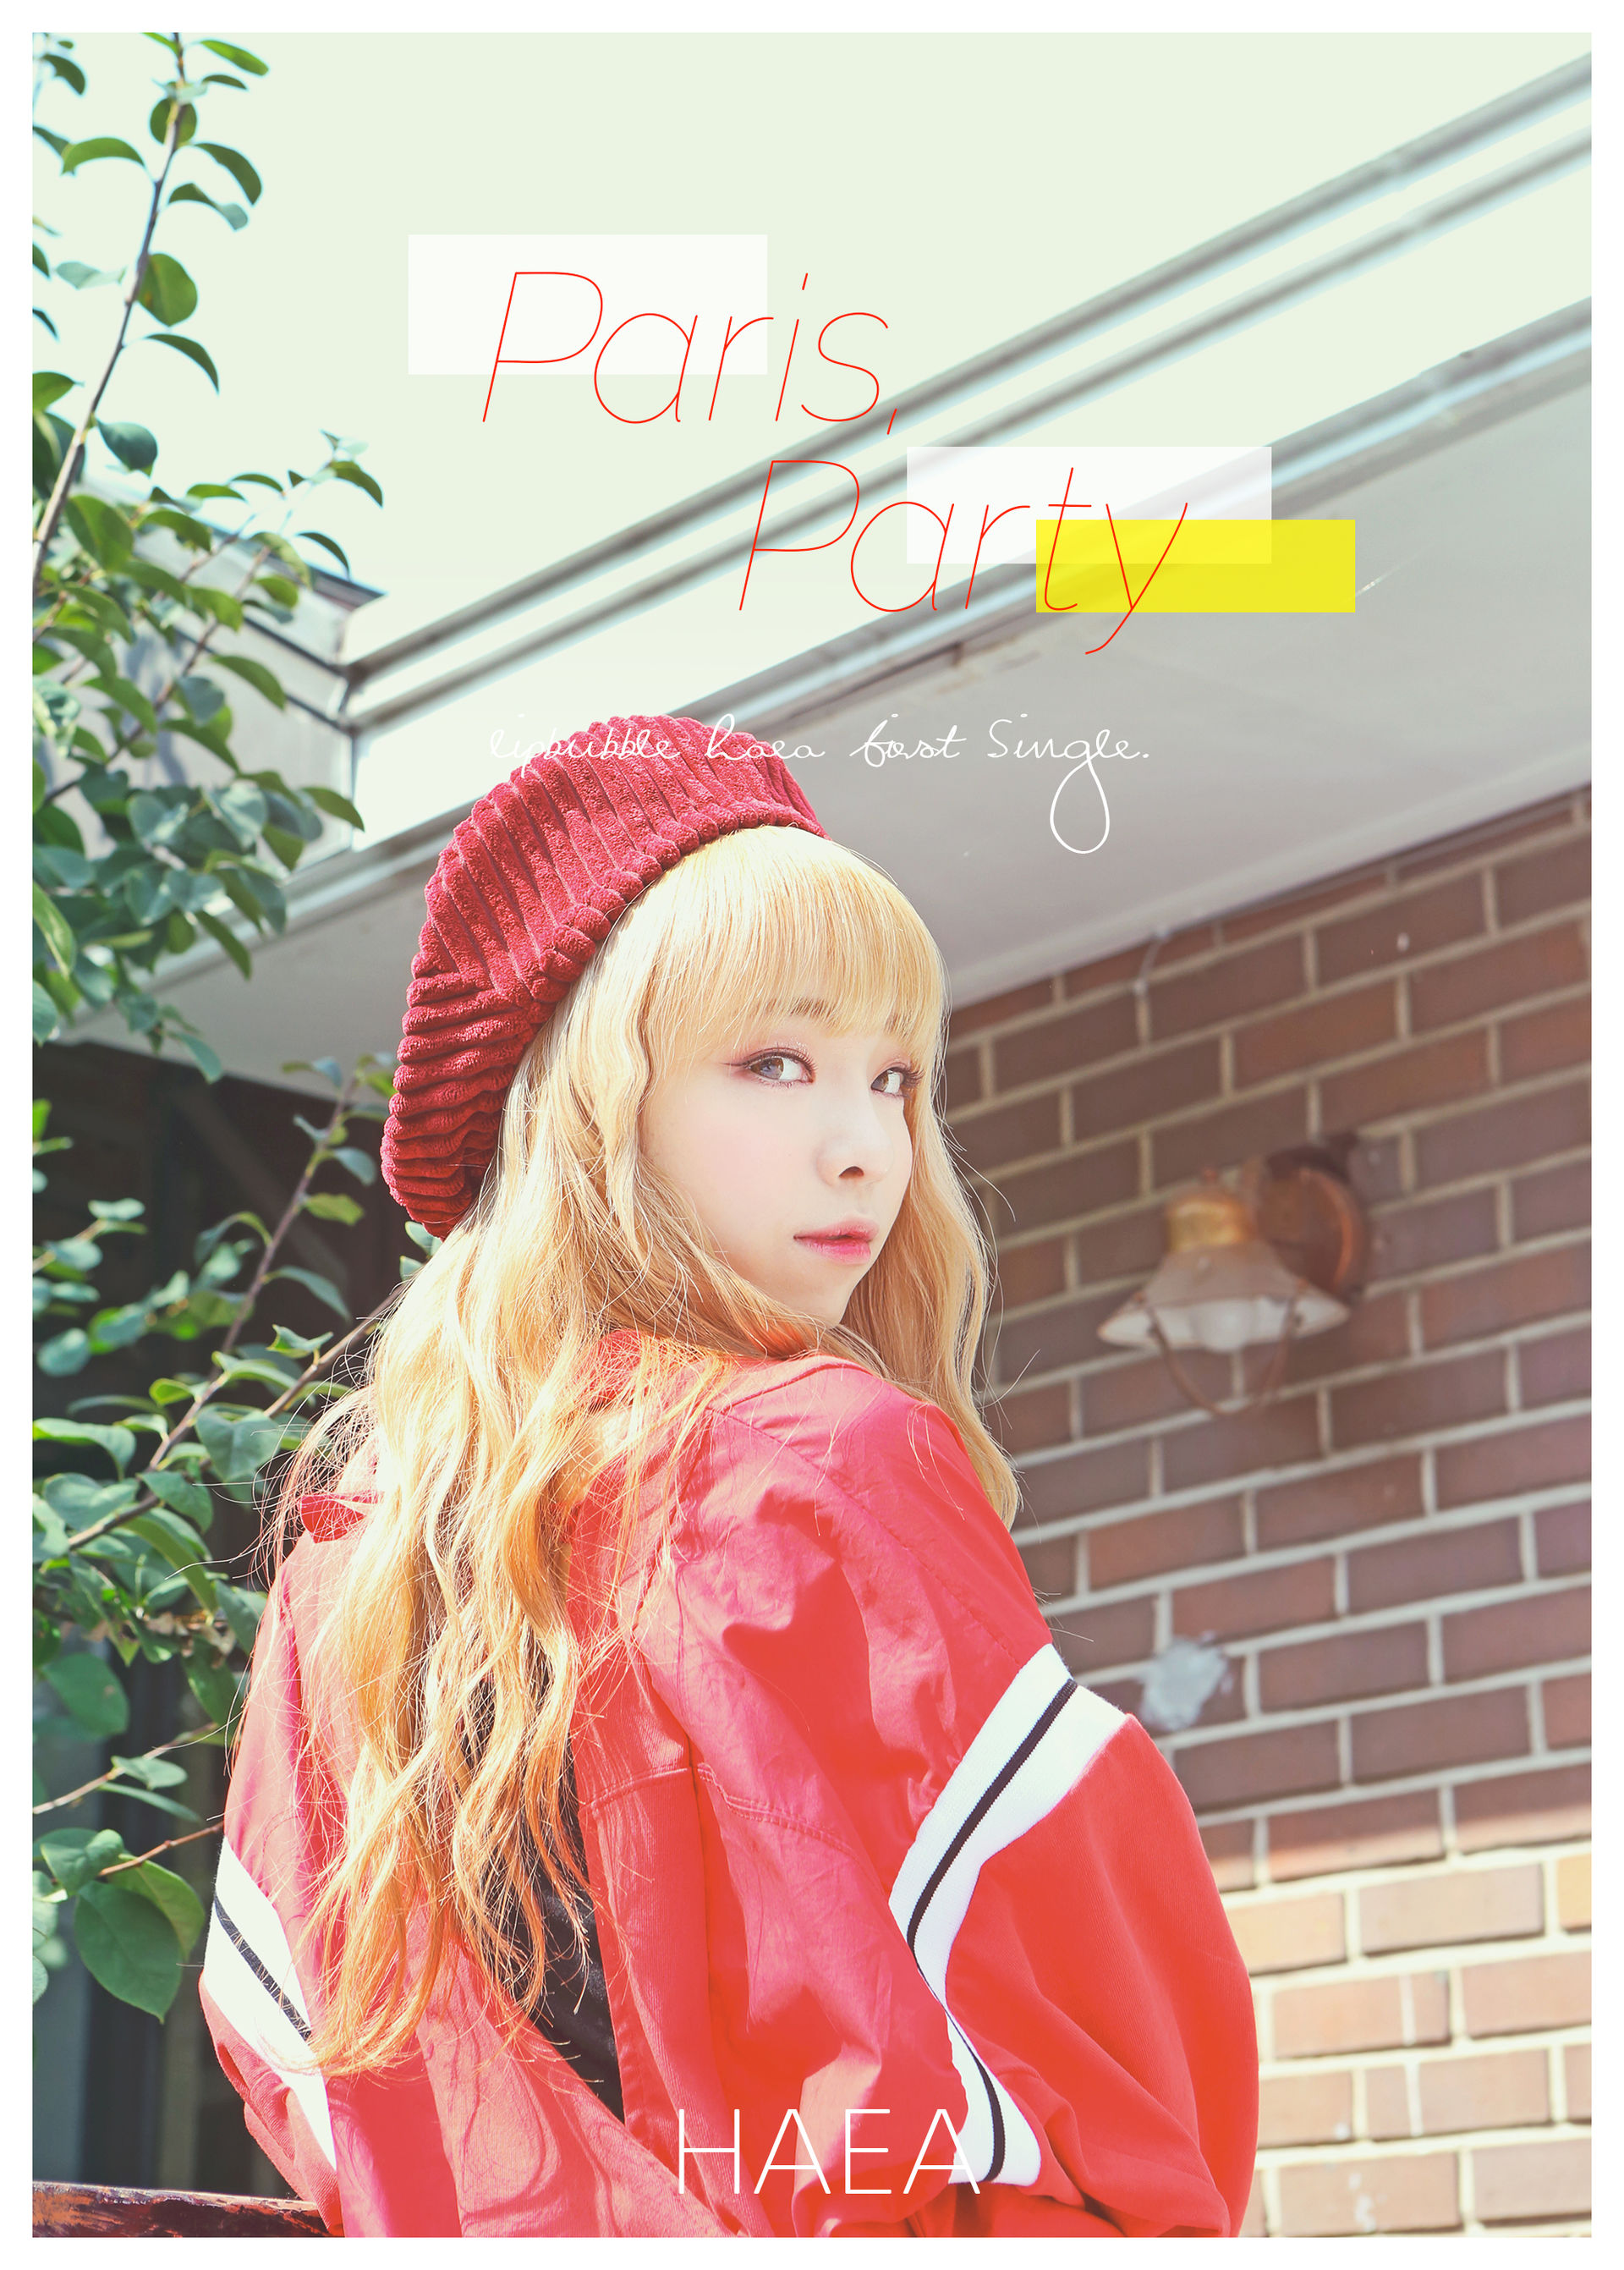 해아 1st Single 'Paris Party'